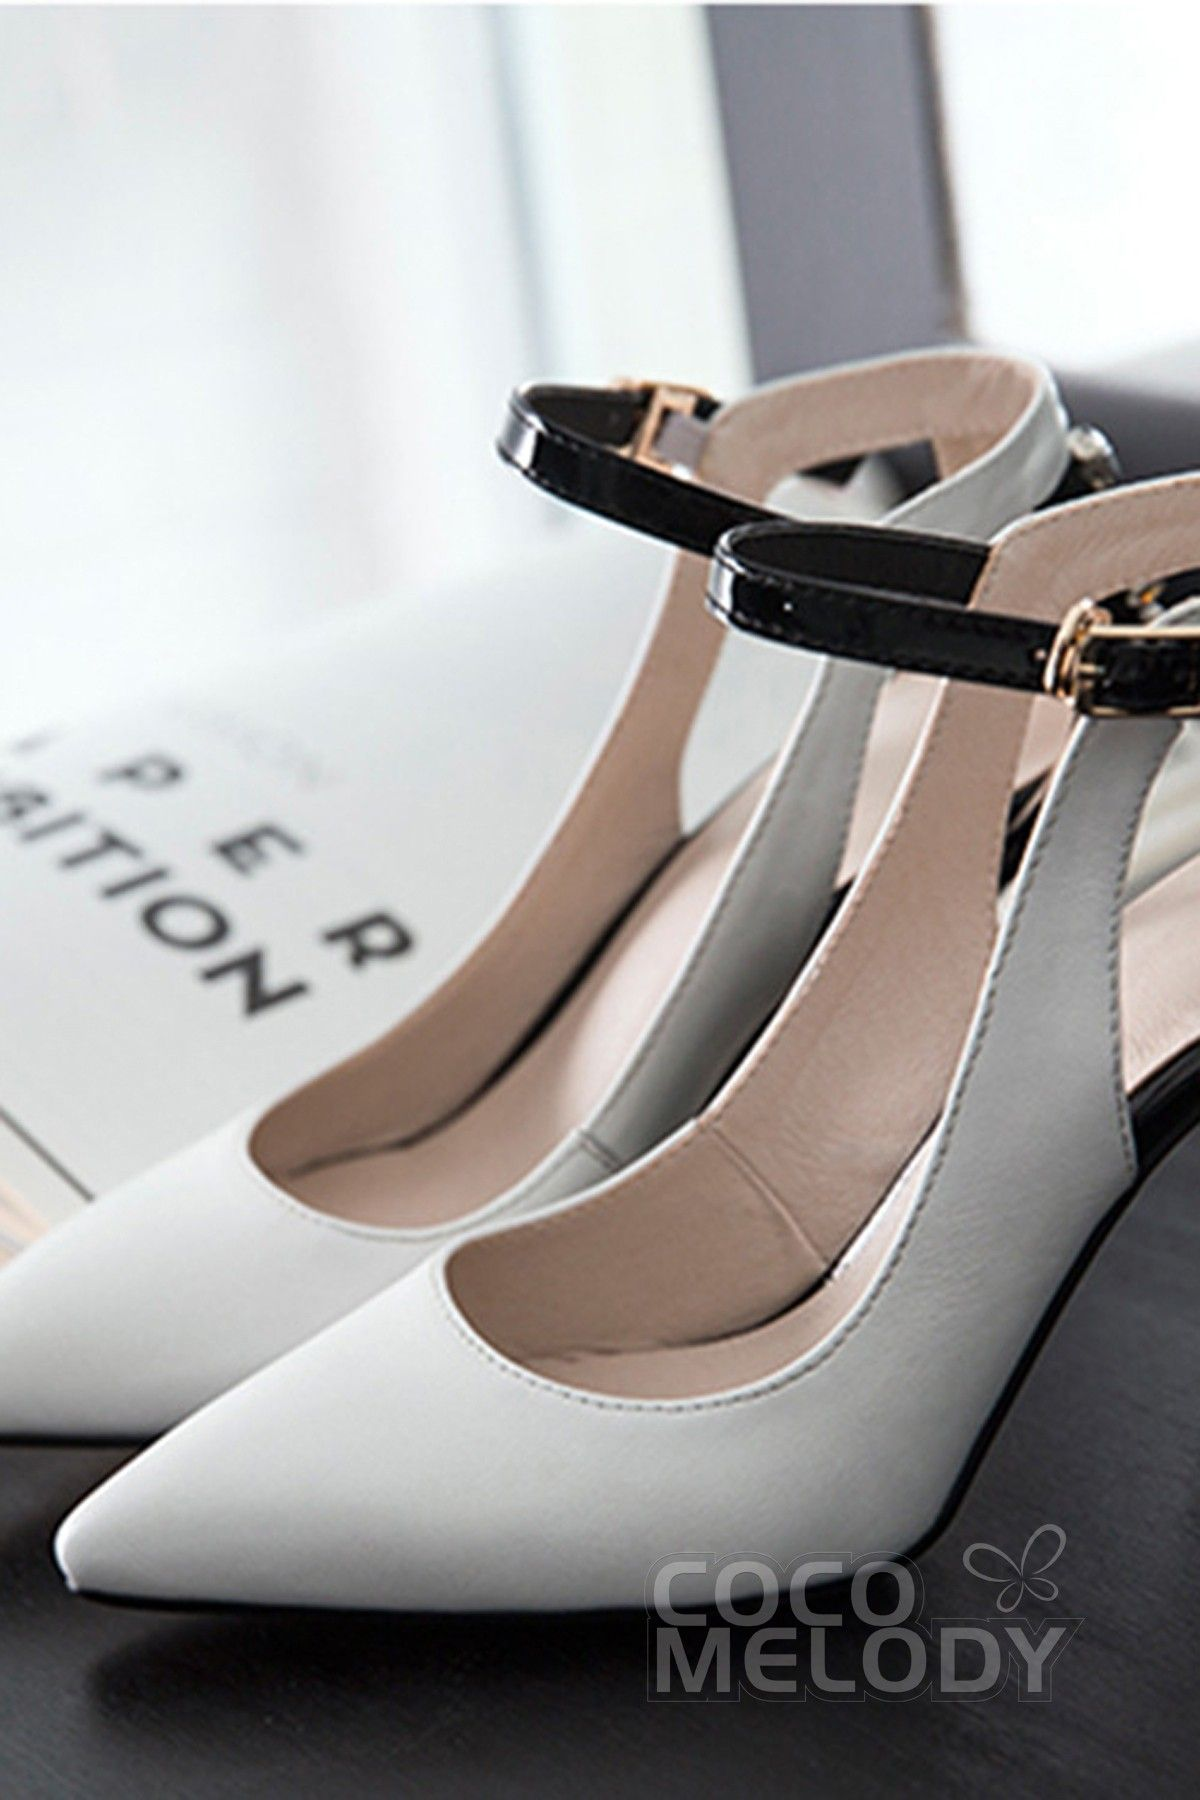 Leather Stiletto Heel 8.5cm Heel Pointed Toe Dress Shoes SWS15011 #cocomelody